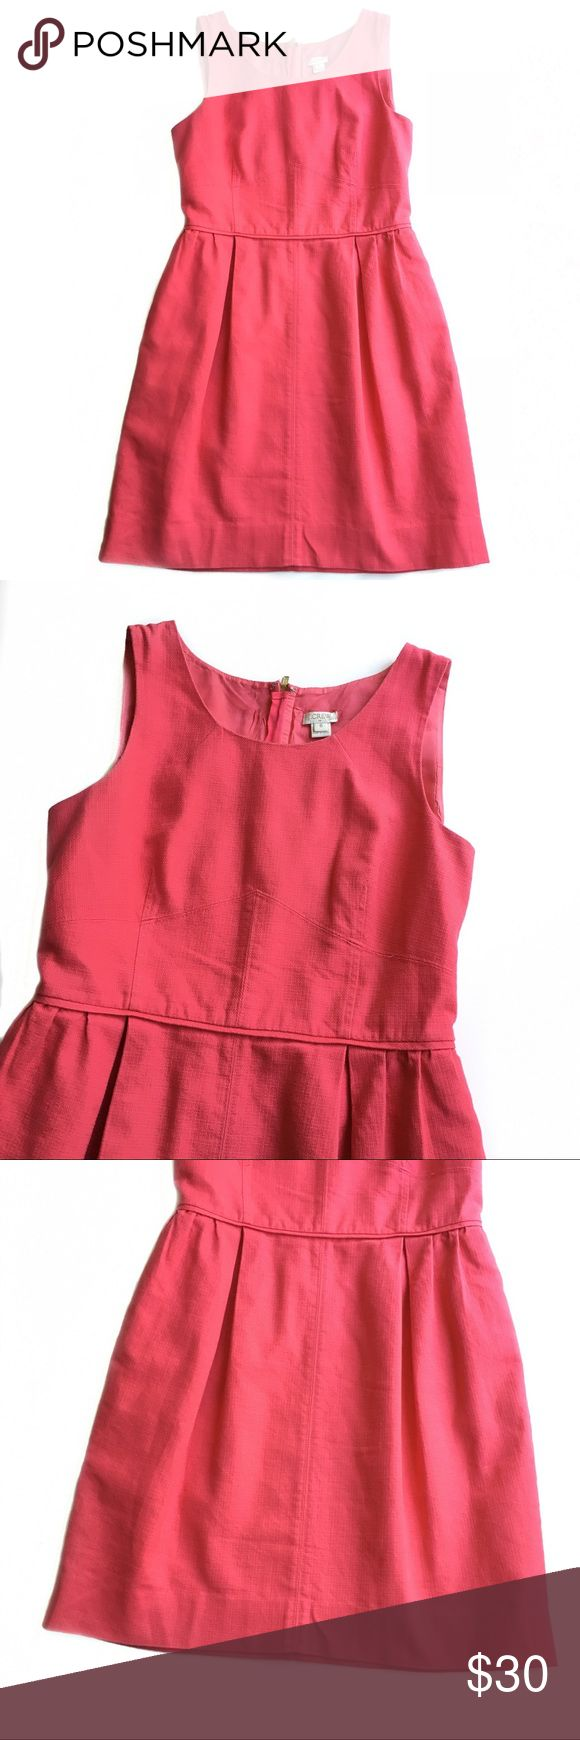 J. CREW | Coral Pink Textured Cotton Dress Size 8 J. Crew coral pink textured cotton dress Dress is free of stains or holes  Size 8  Bundle two or more items in my closet for a low price offer! J. Crew Dresses Mini